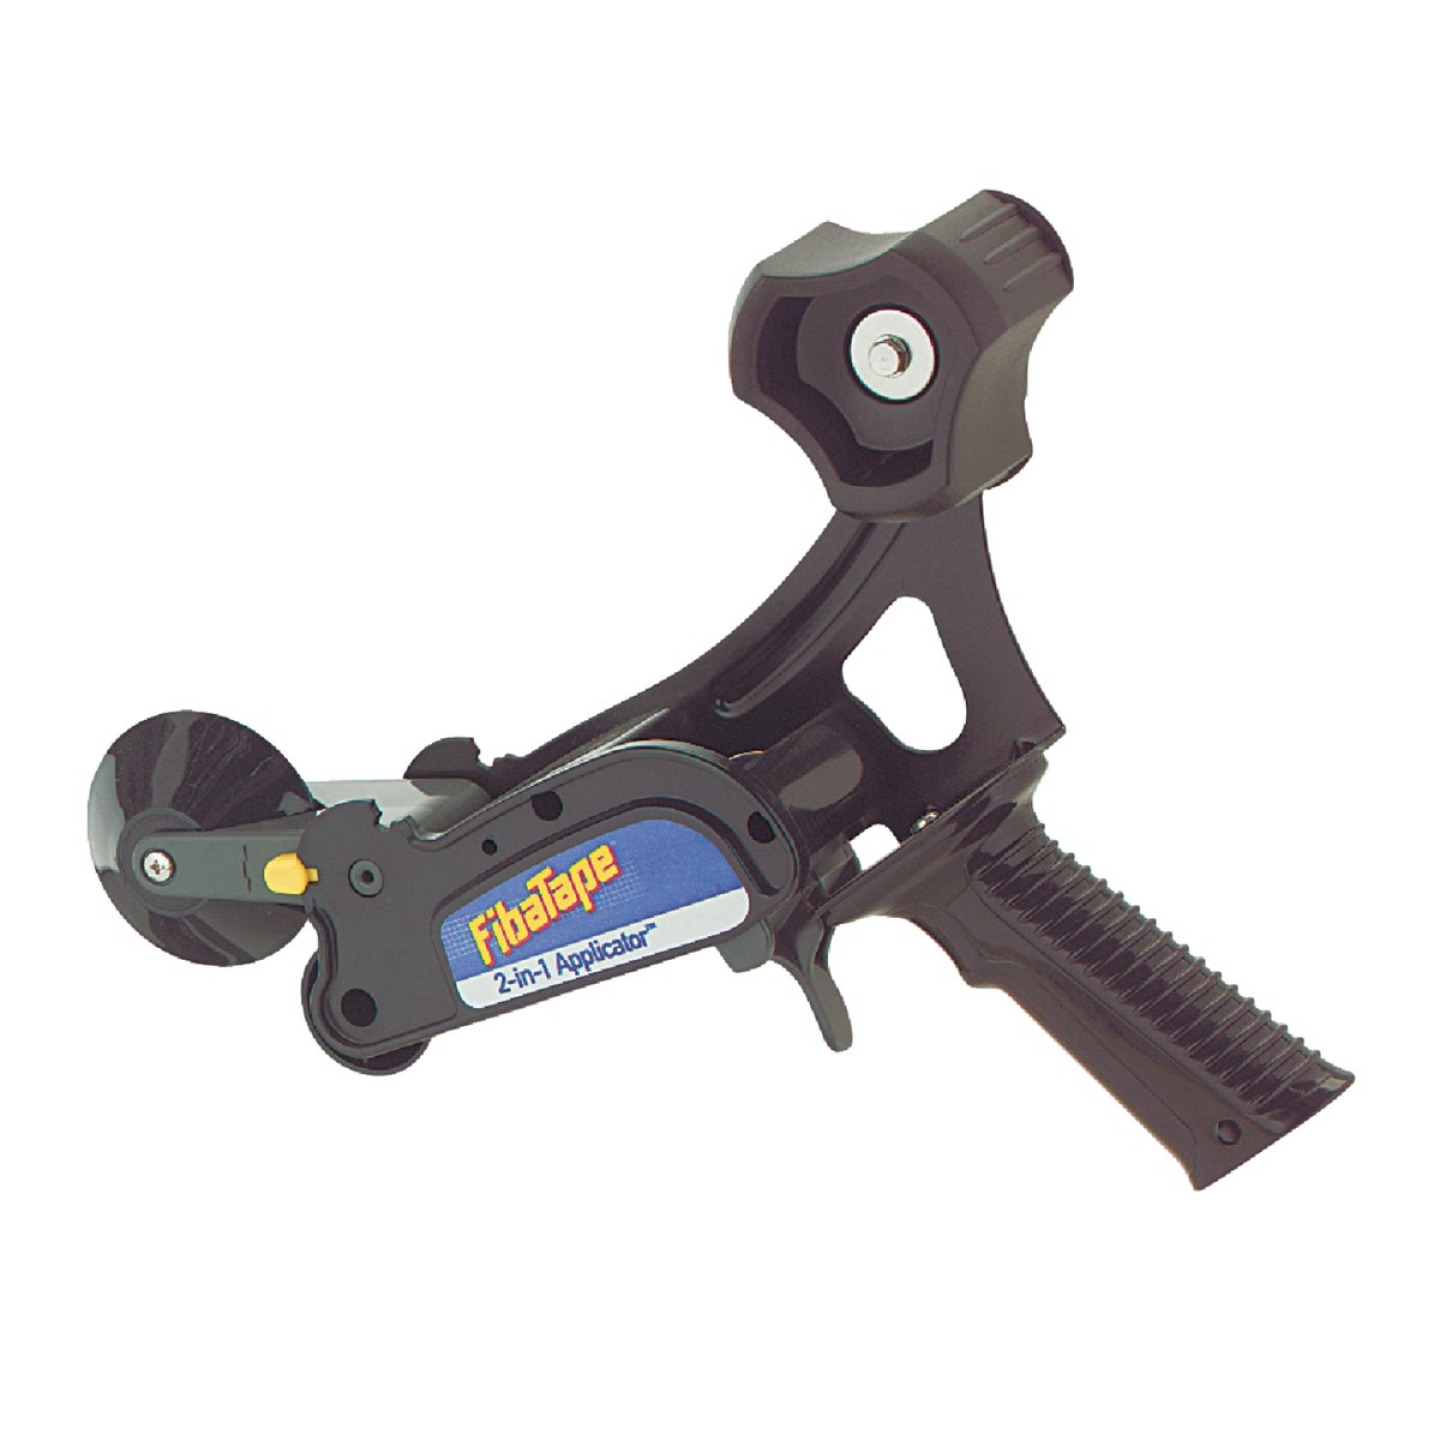 FibaTape 2-In-1 Drywall Tape Dispenser Image 1